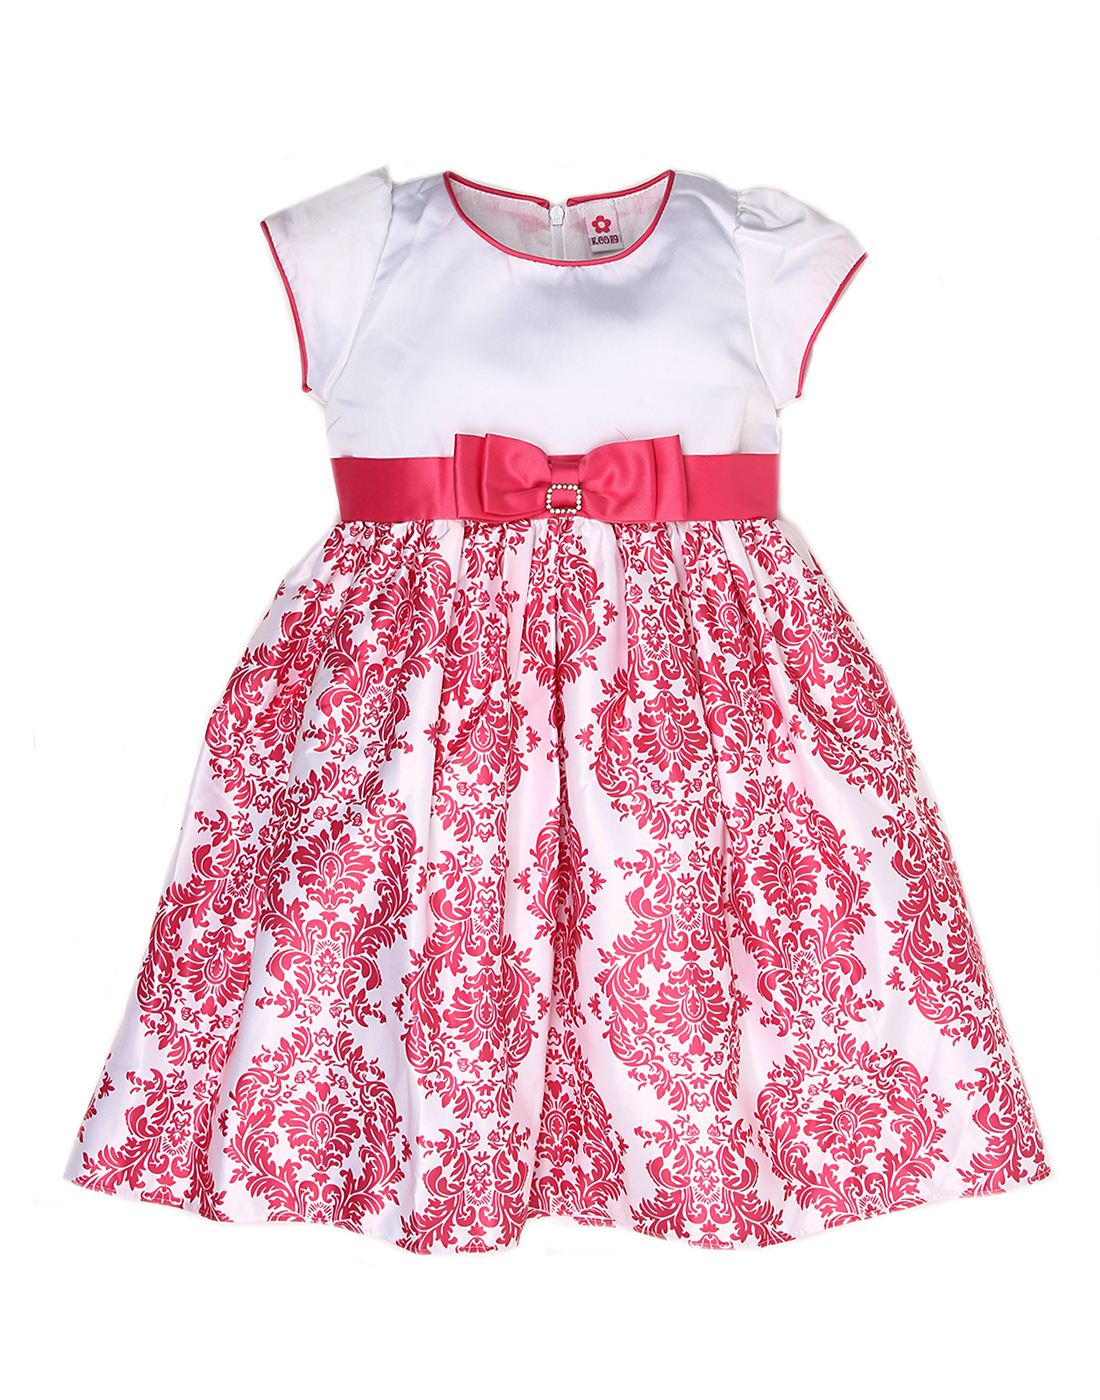 K.C.O 89 Girls Party Wear Printed Cap Sleeves Frock